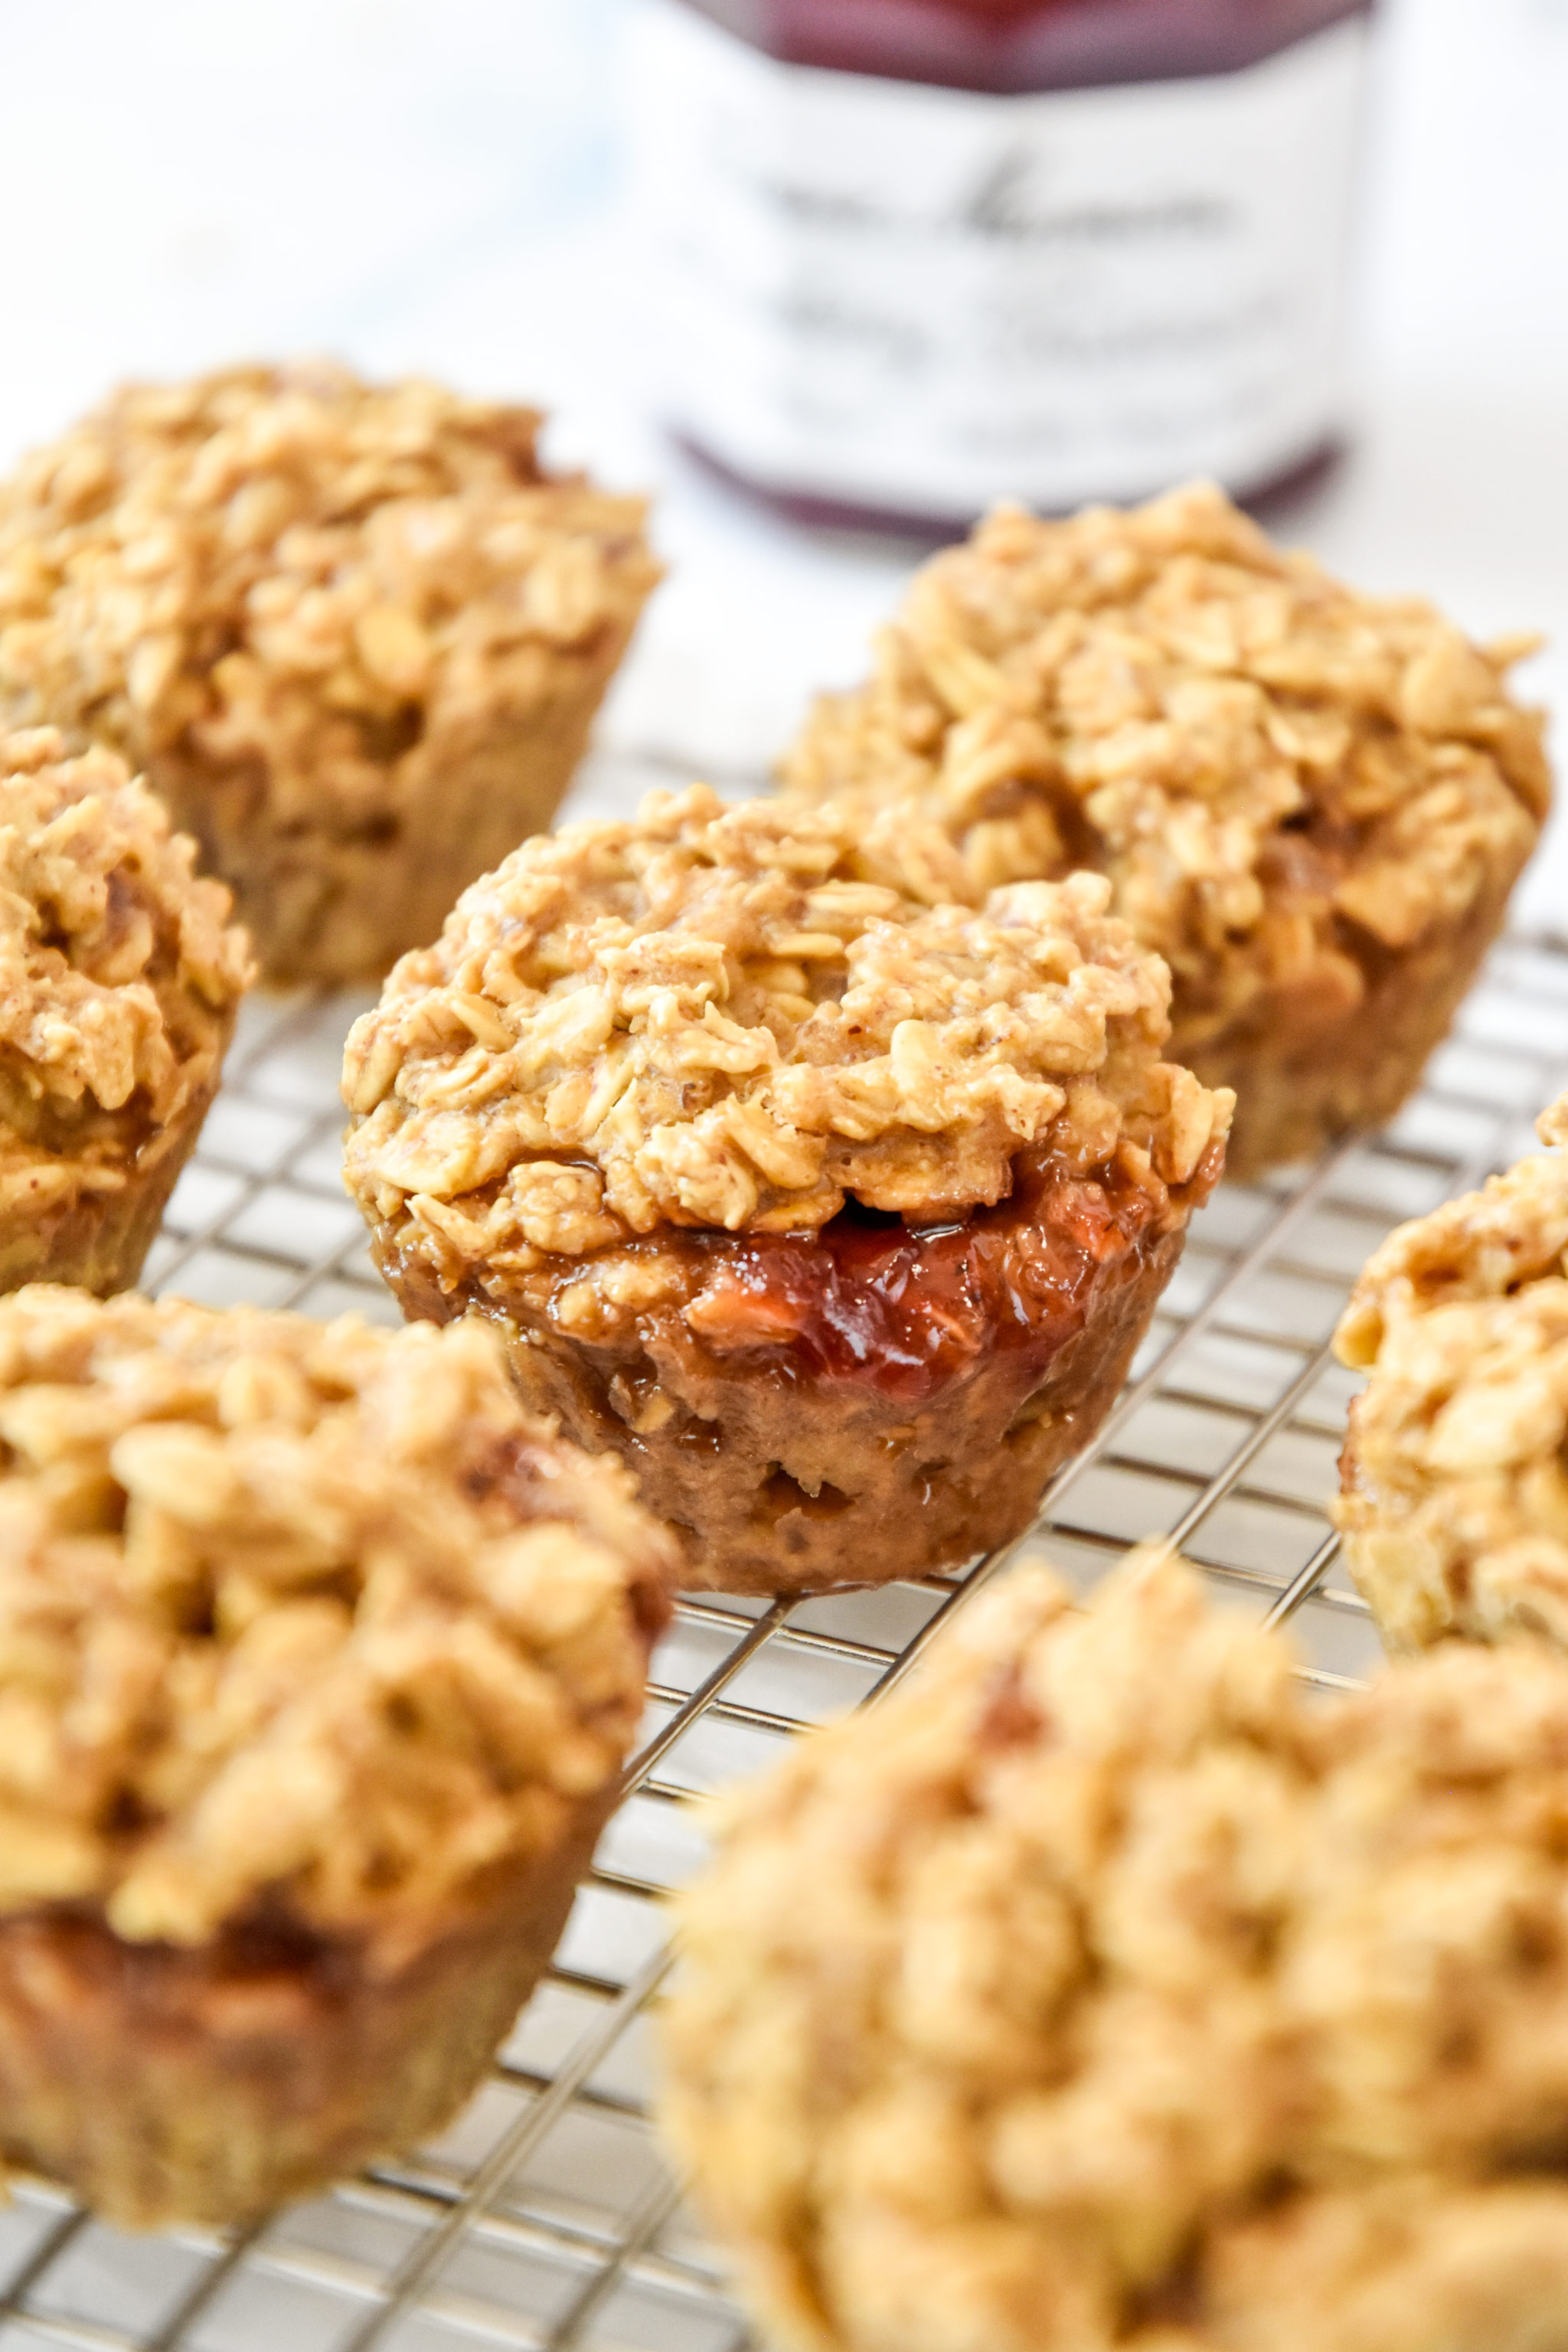 peanut butter & jelly baked oatmeal cups on a cooling rack.